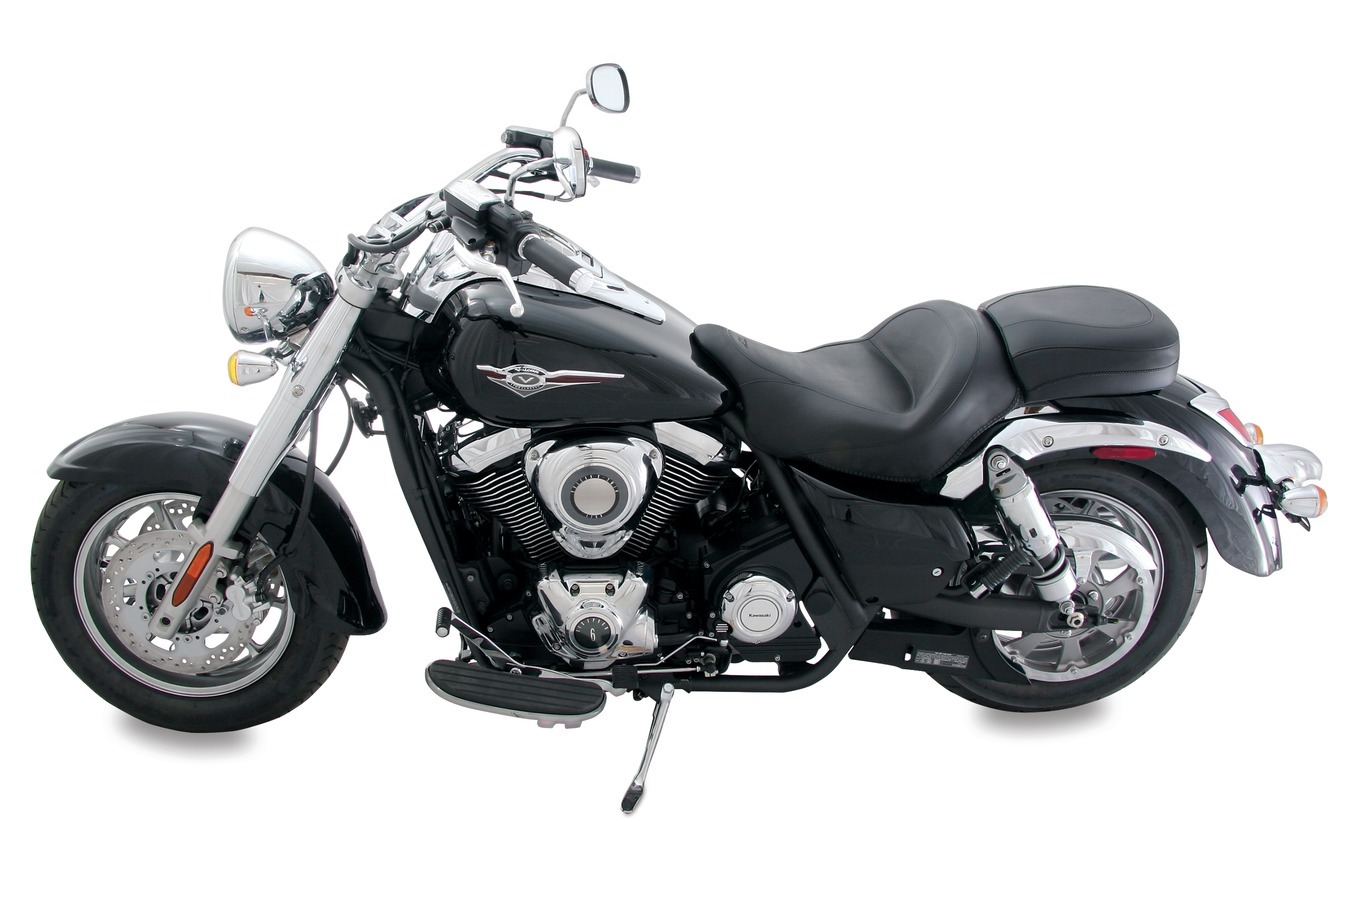 Standard Touring One-Piece Seat for Kawasaki Vulcan 1700 Classic 2009-